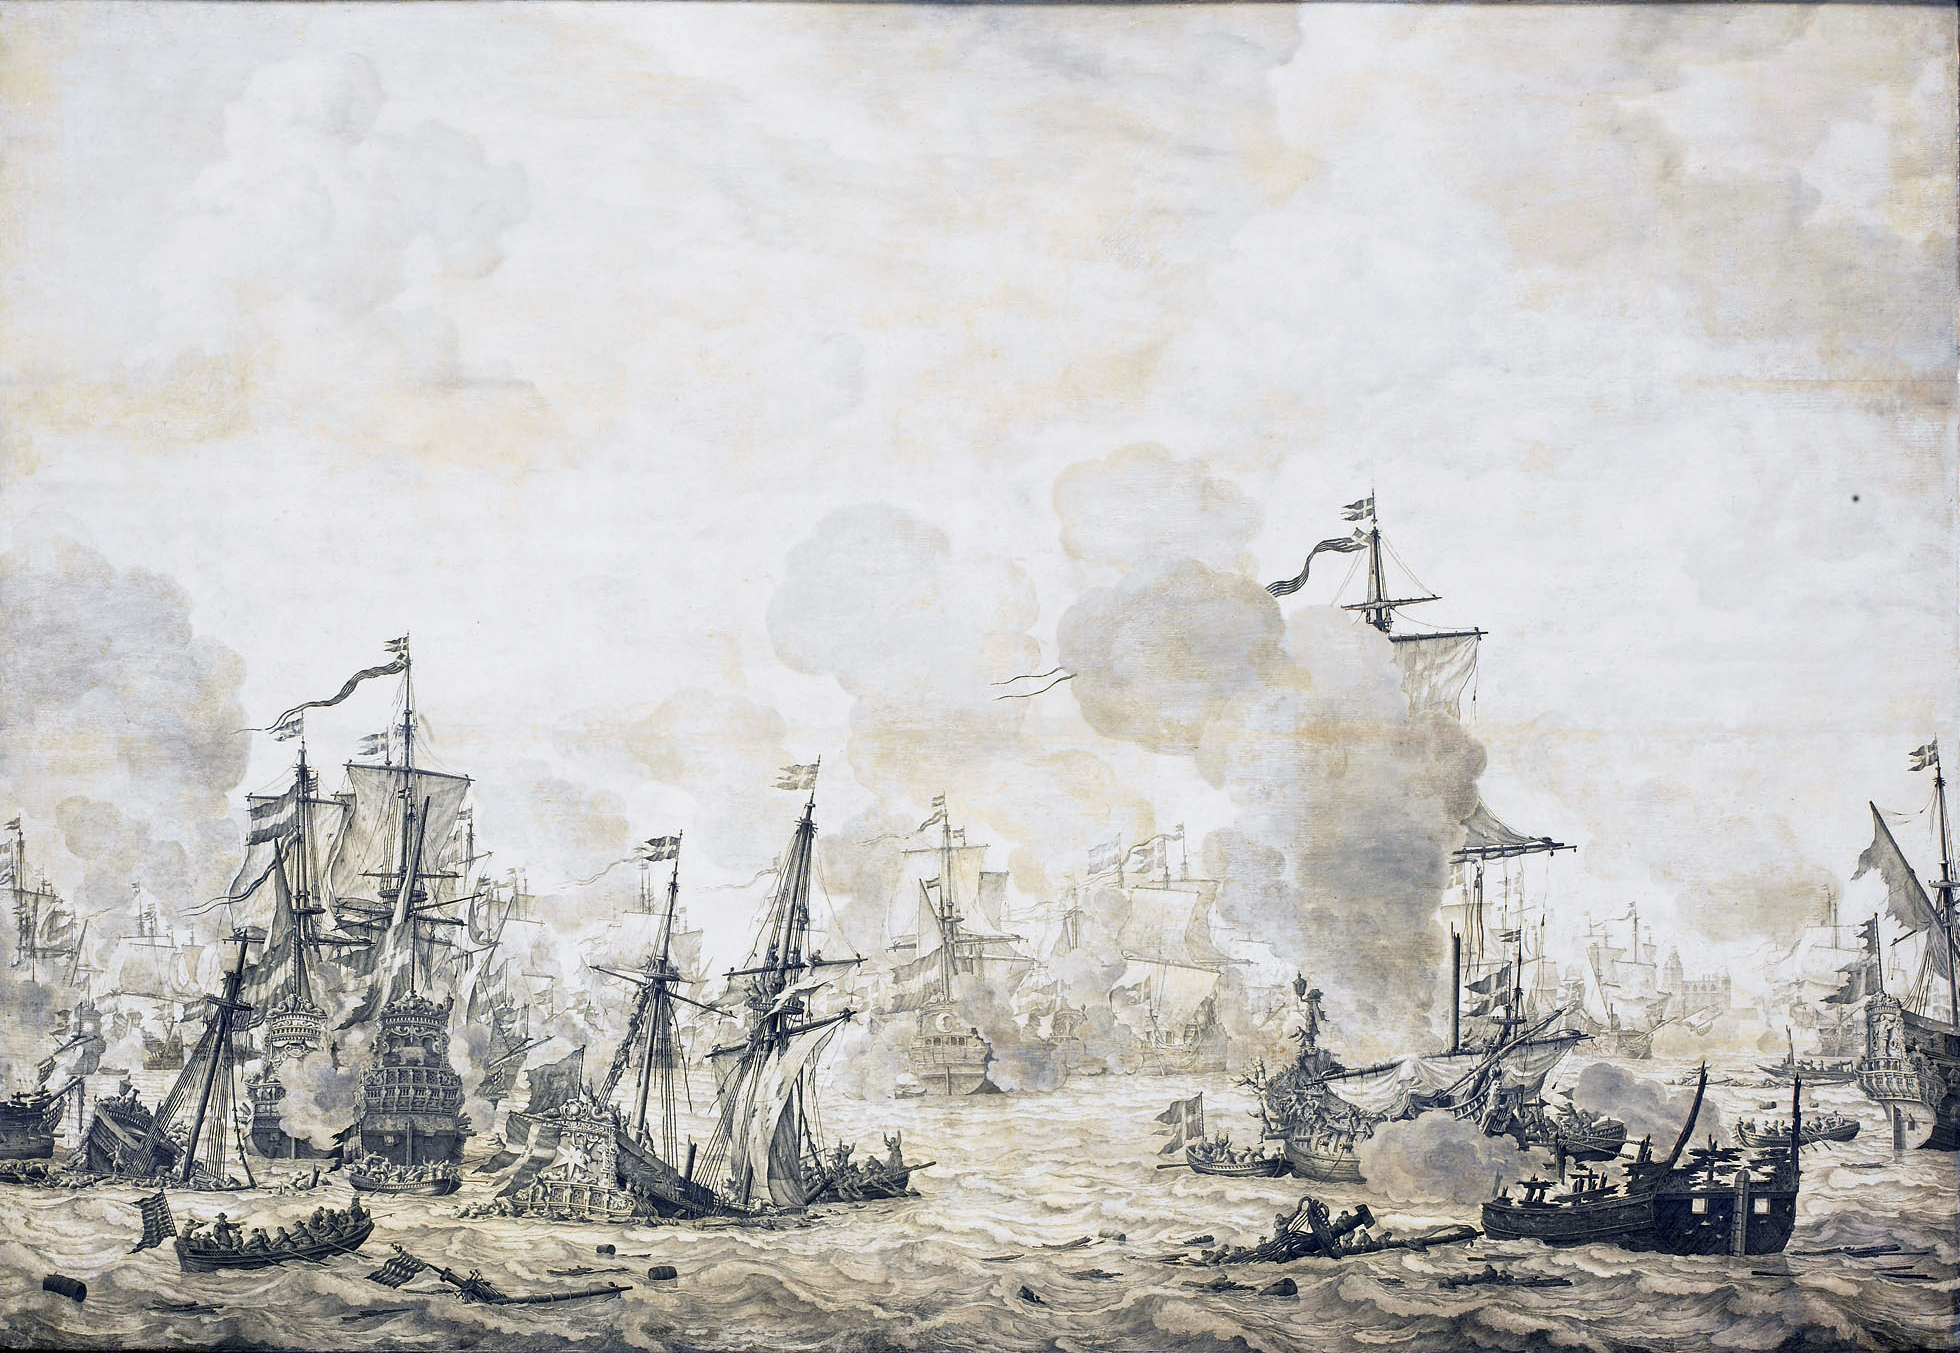 File:Slag in de Sont - Battle of the Sound, November 8 1658-